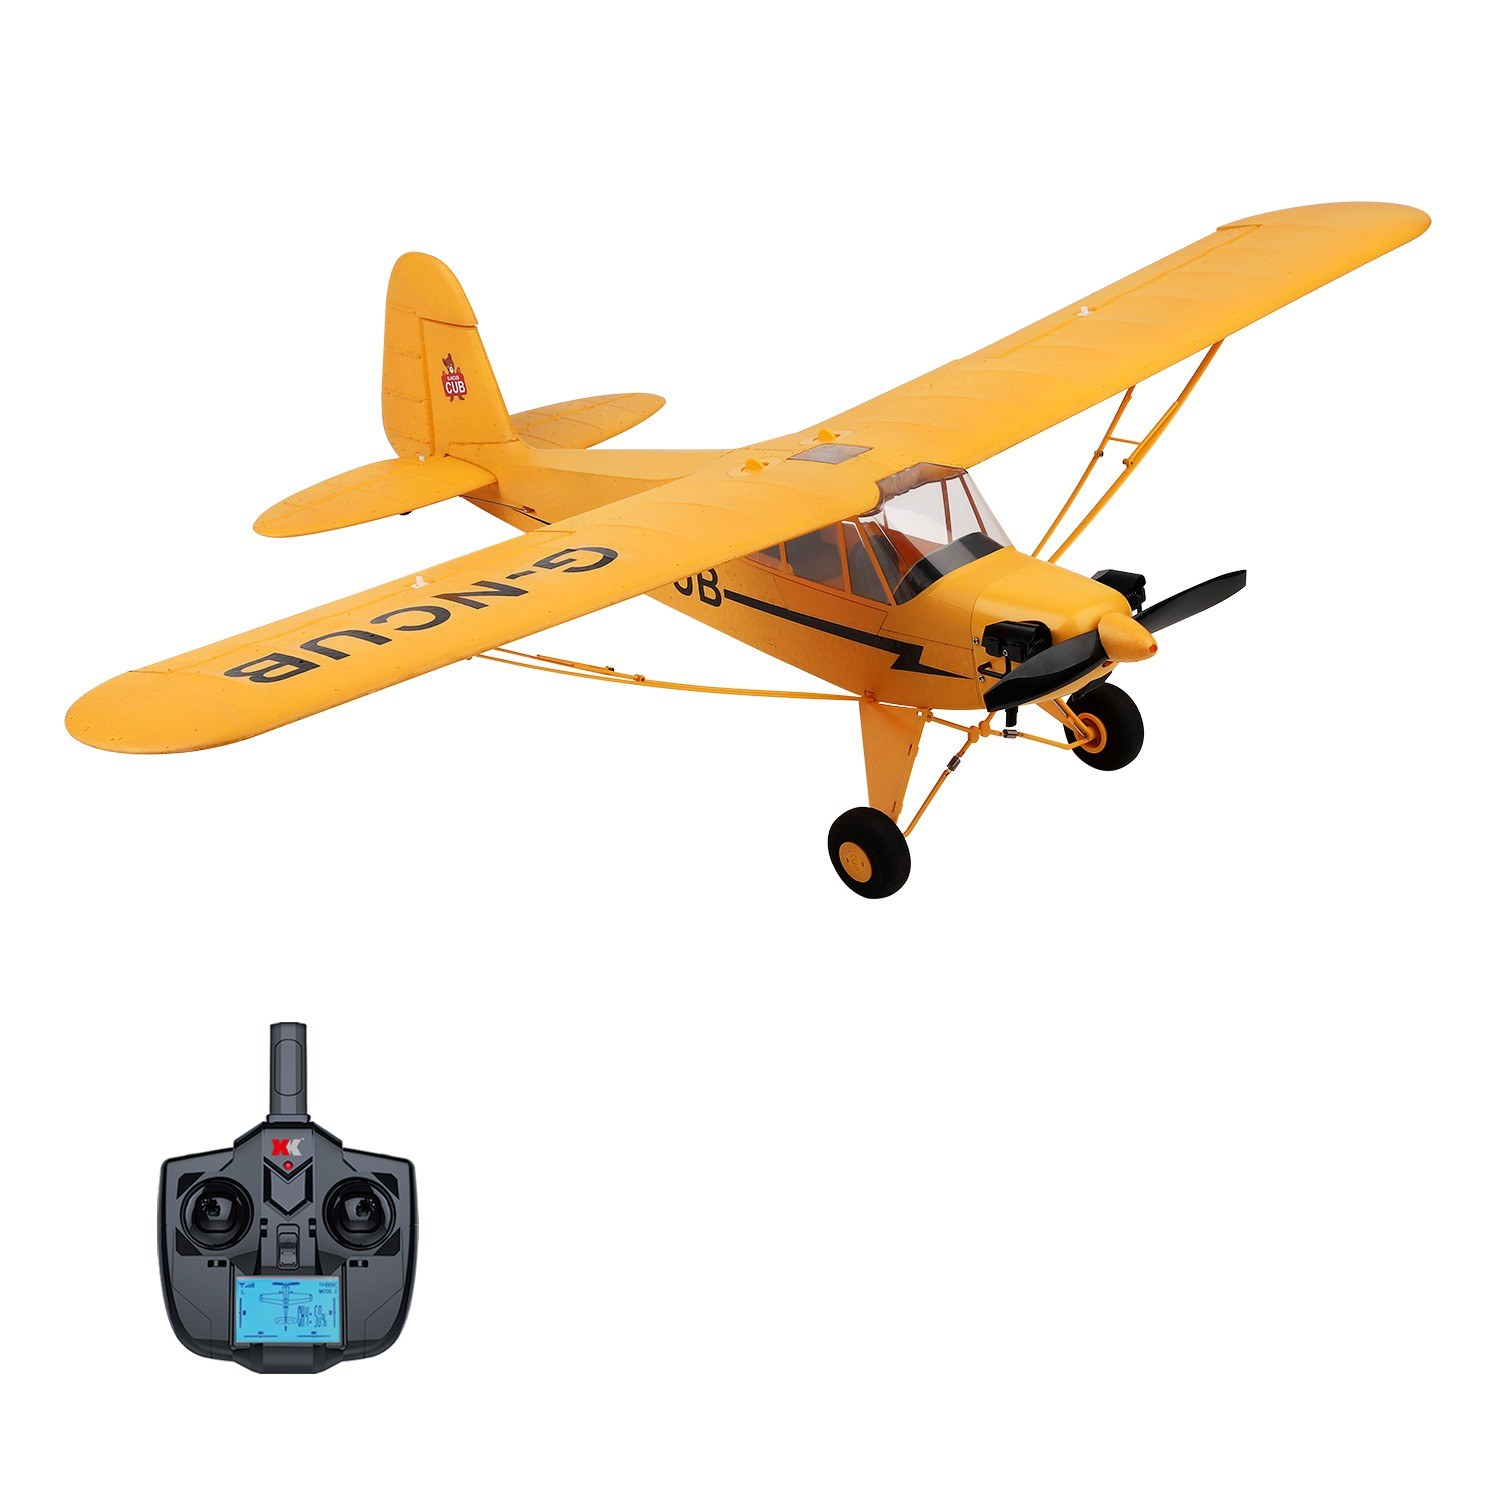 Tomtop - 55% OFF Wltoys A160 5 Channel Brushless Remote Control Airplane for Adults, Free Shipping $108.99